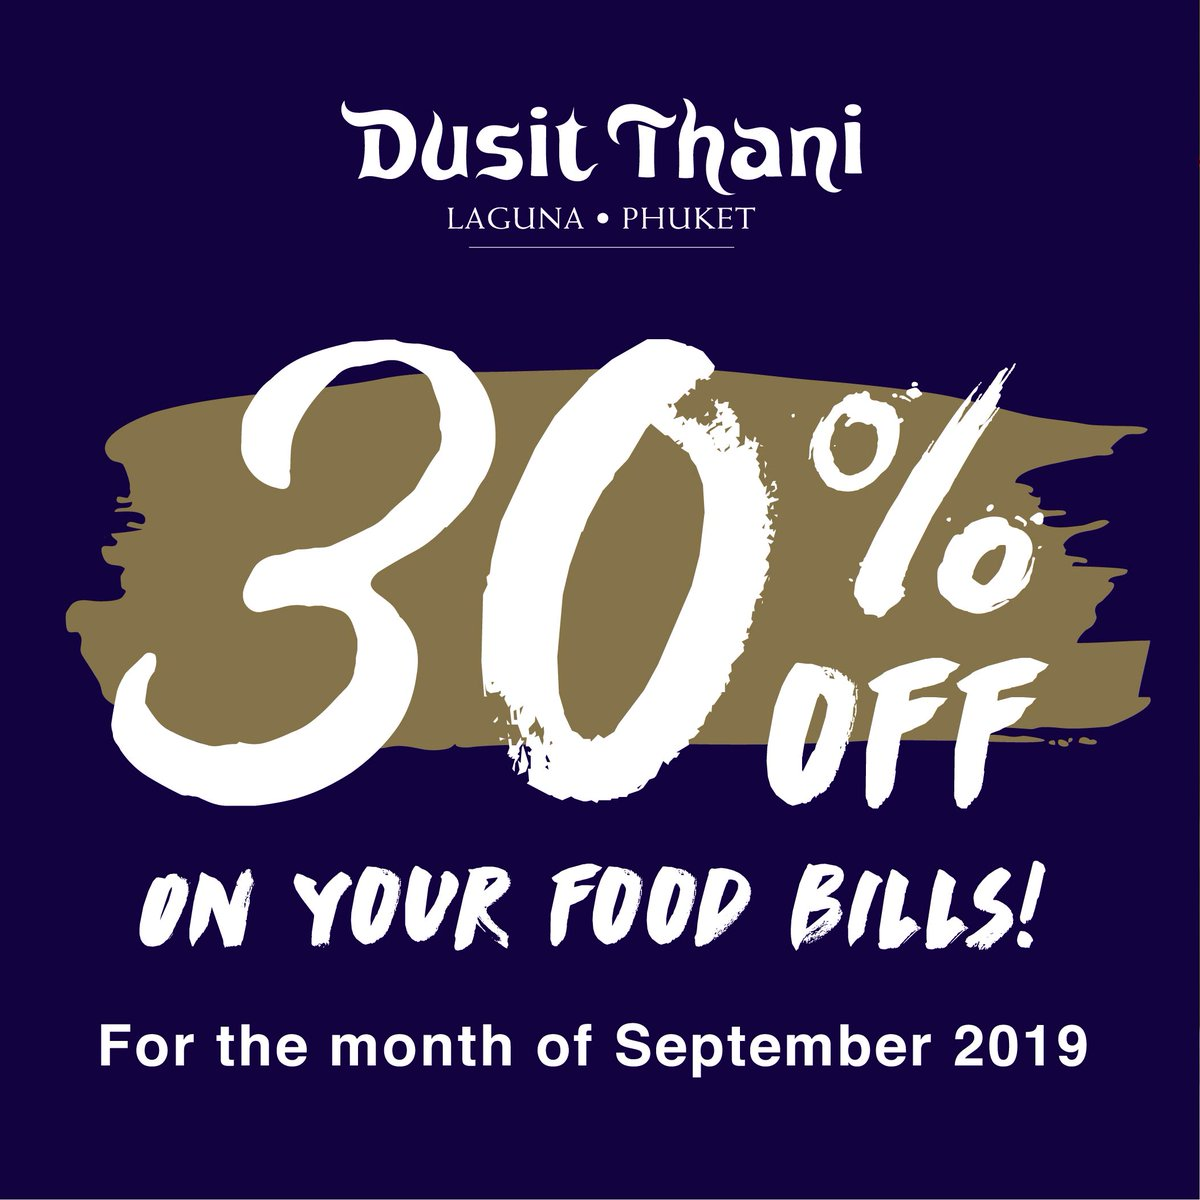 """Enjoy our """"SEPTEMBER OFFERS!""""  #WeeklyBuffet 😋 #AlaCarteMenus 🍽 #20%OFFdrinks   -For more information please contact us via- ☎️ 076-362999 ext 7303 📧 dtlpfb@dusit.com 📩 Inbox https://t.co/NA1N3IOFCu"""